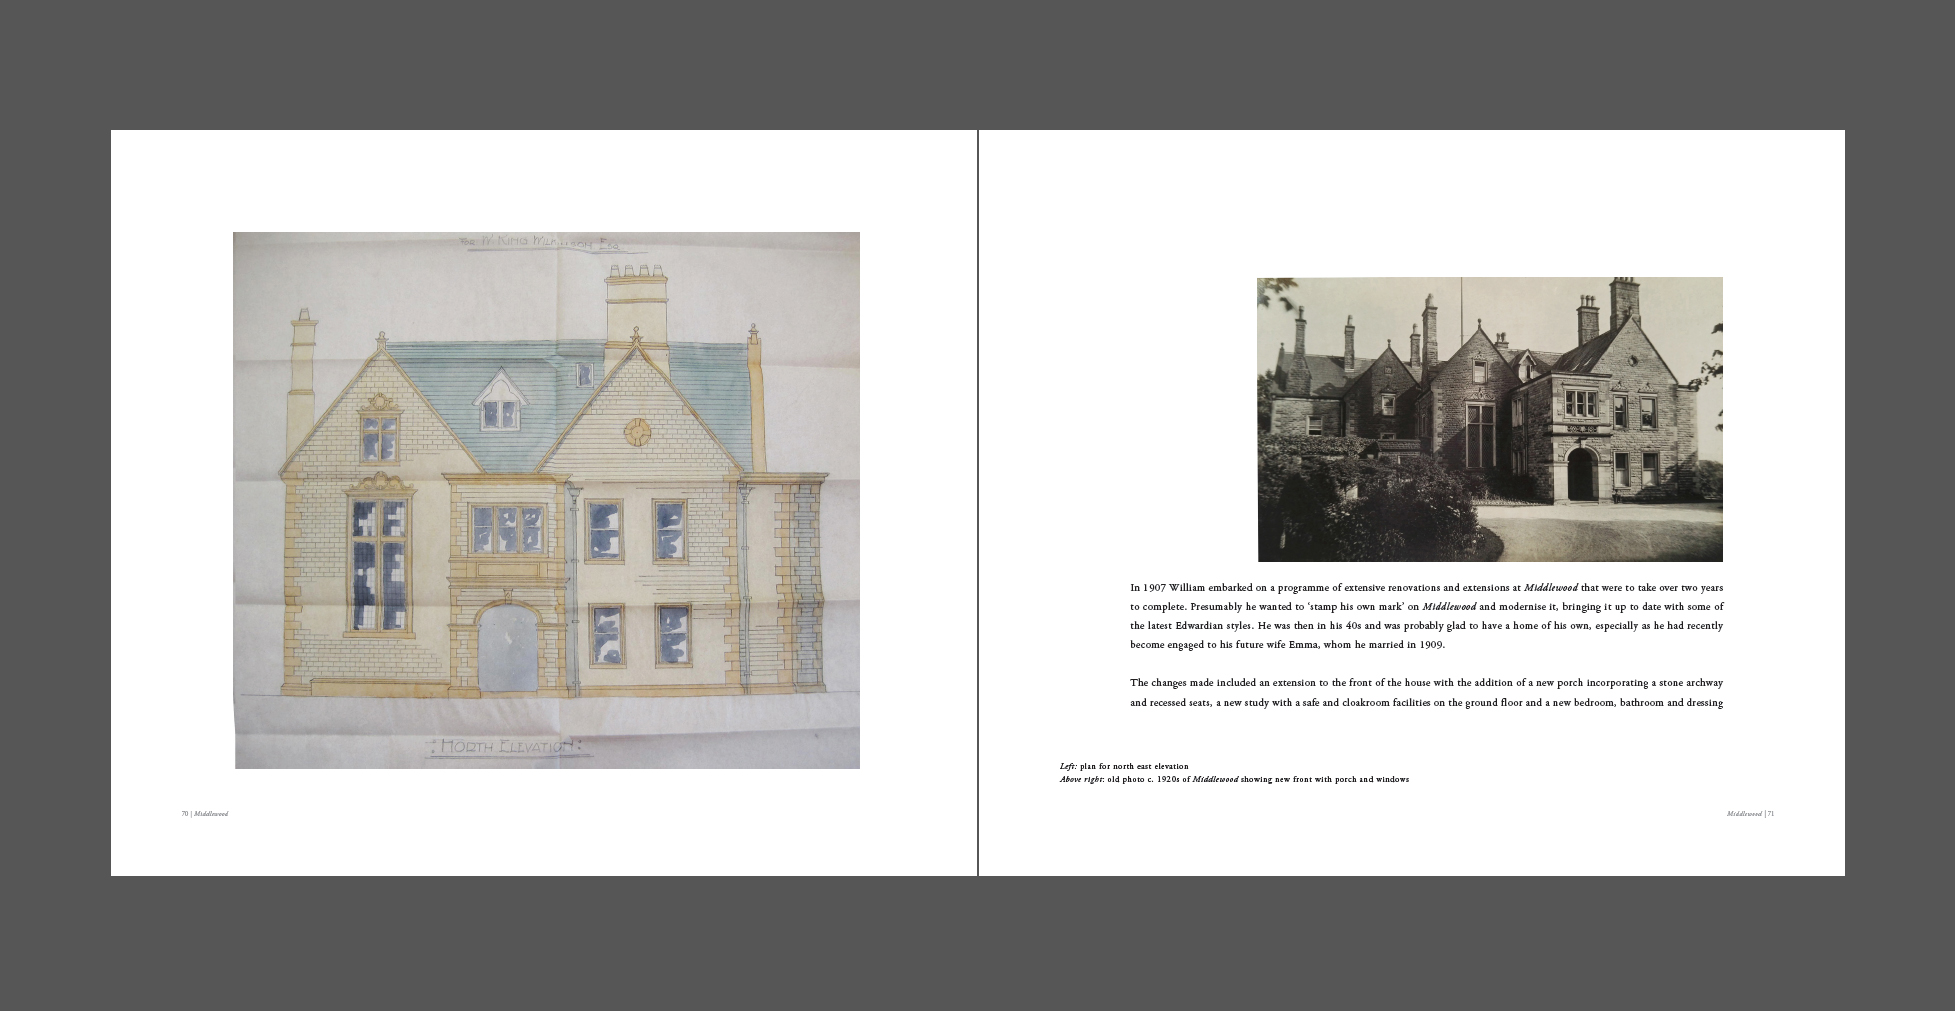 BENCHMARK_HOUSE_HISTORIES_Carol_Fulton_Middlewood_spread_70_71.jpg